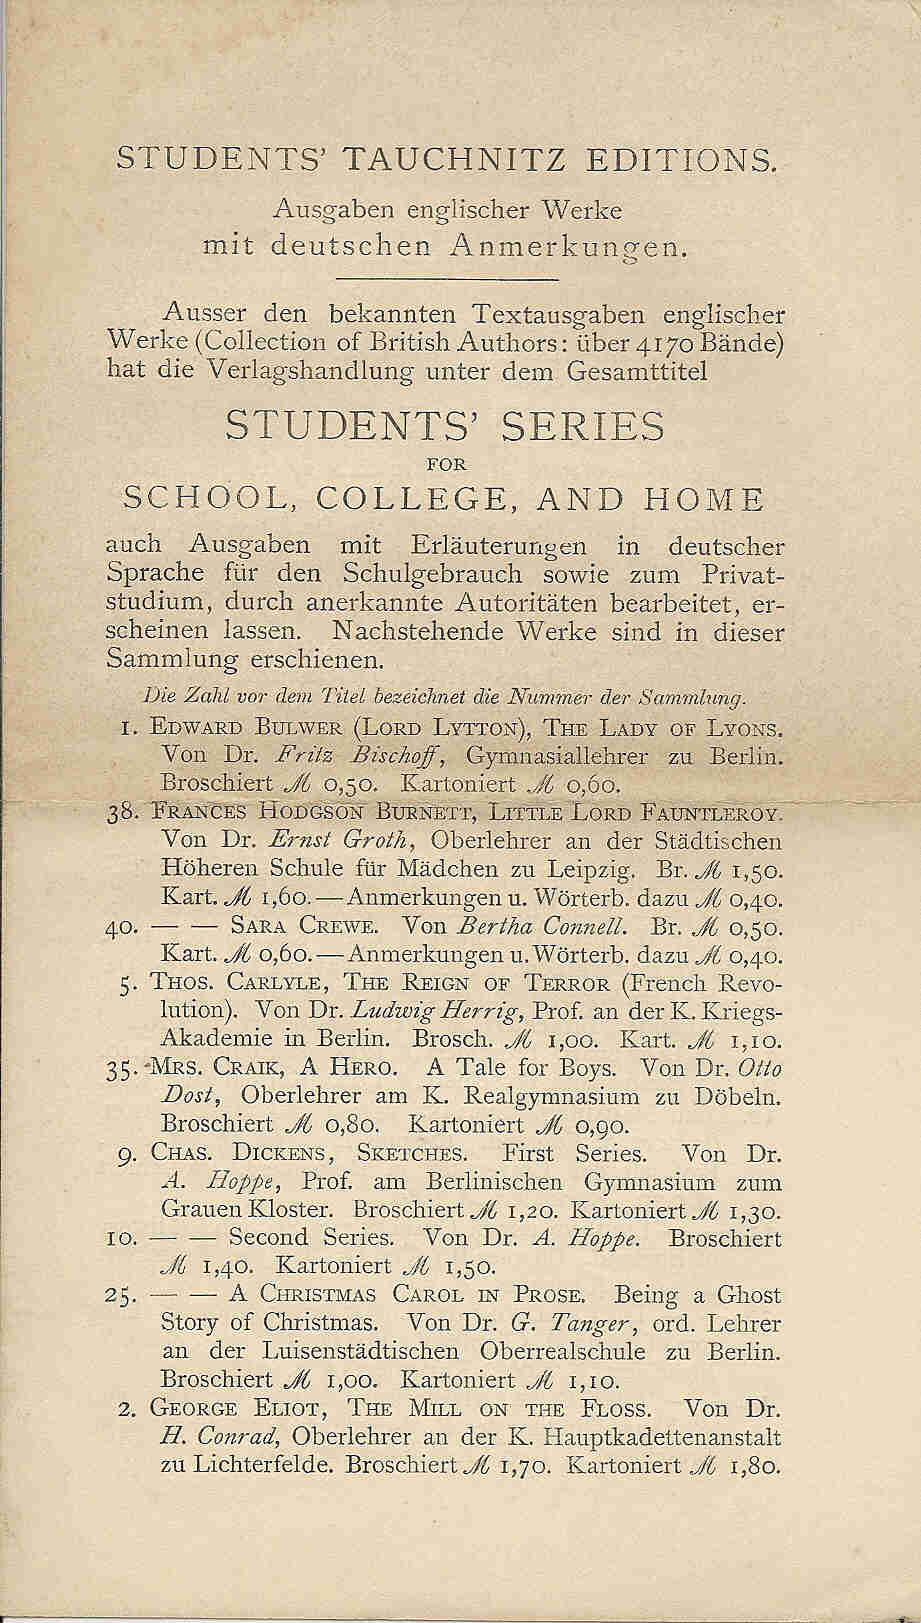 flyer for Students Series